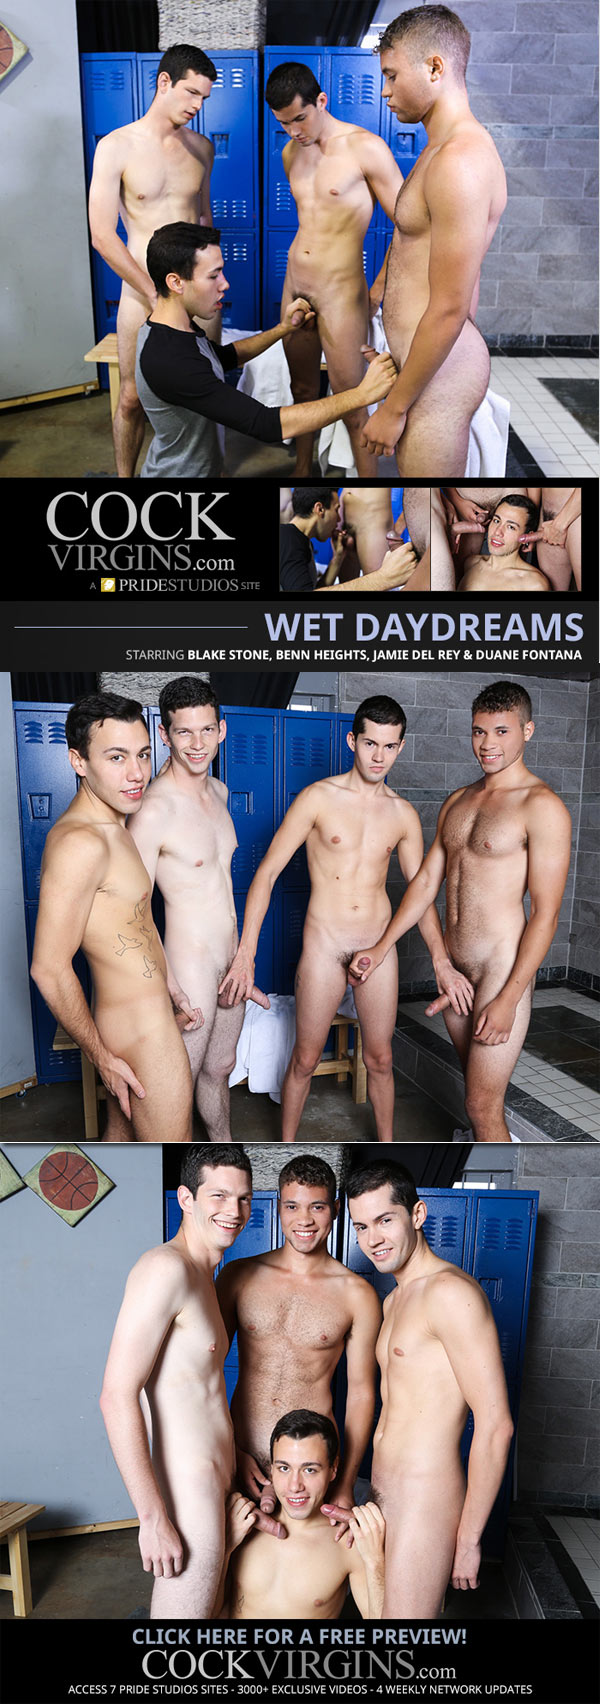 Wet Daydreams (Blake Stone, Benn Heights, Jamie Del Ray & Duane Fontana) at CockVirgins